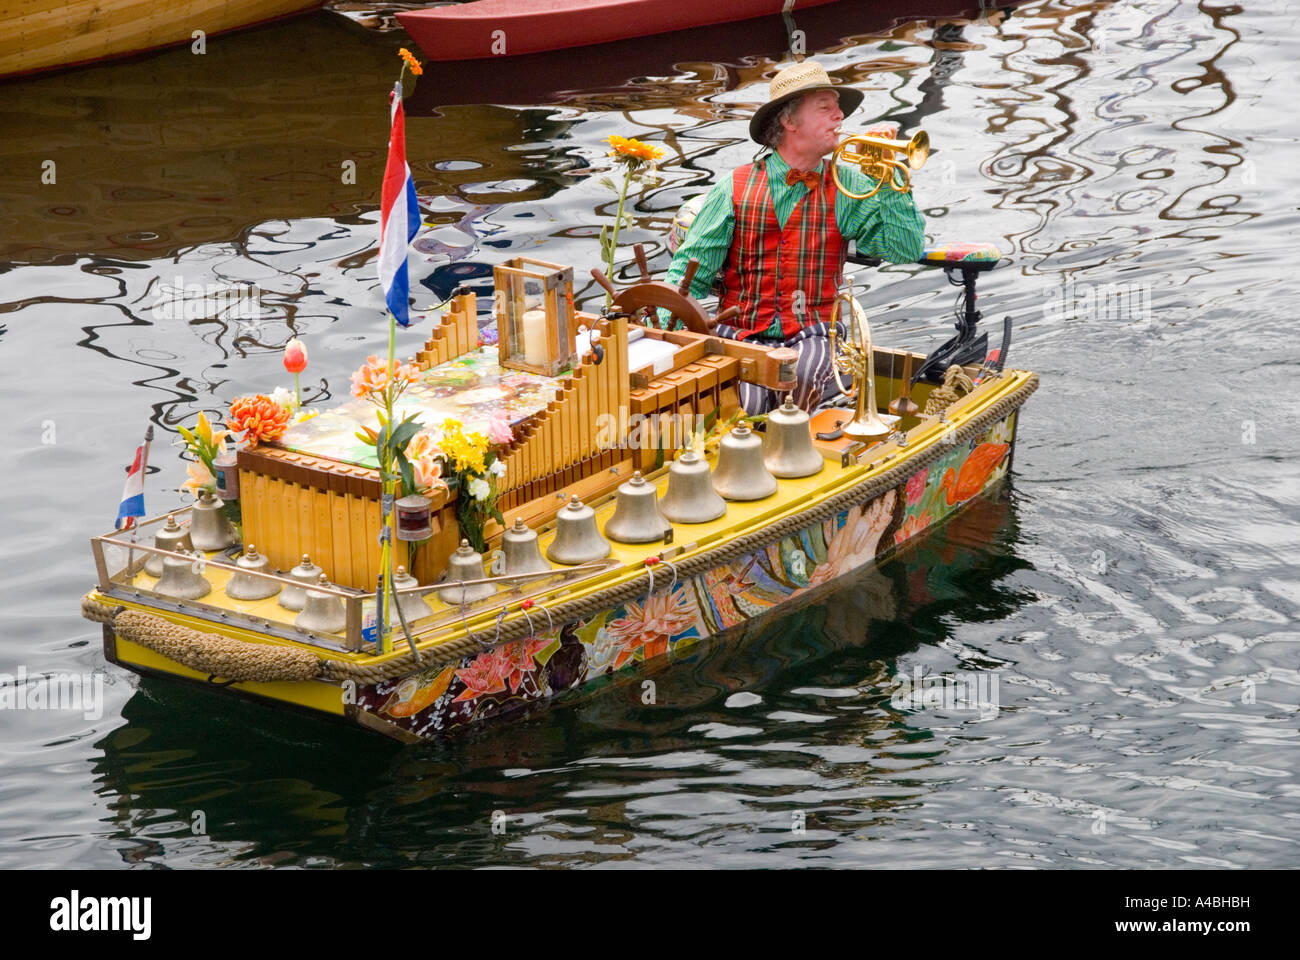 This unusual Dutch music boat Cecilia serenades the craft at the Australian Wooden Boat Festival 2007 in Hobart - Stock Image